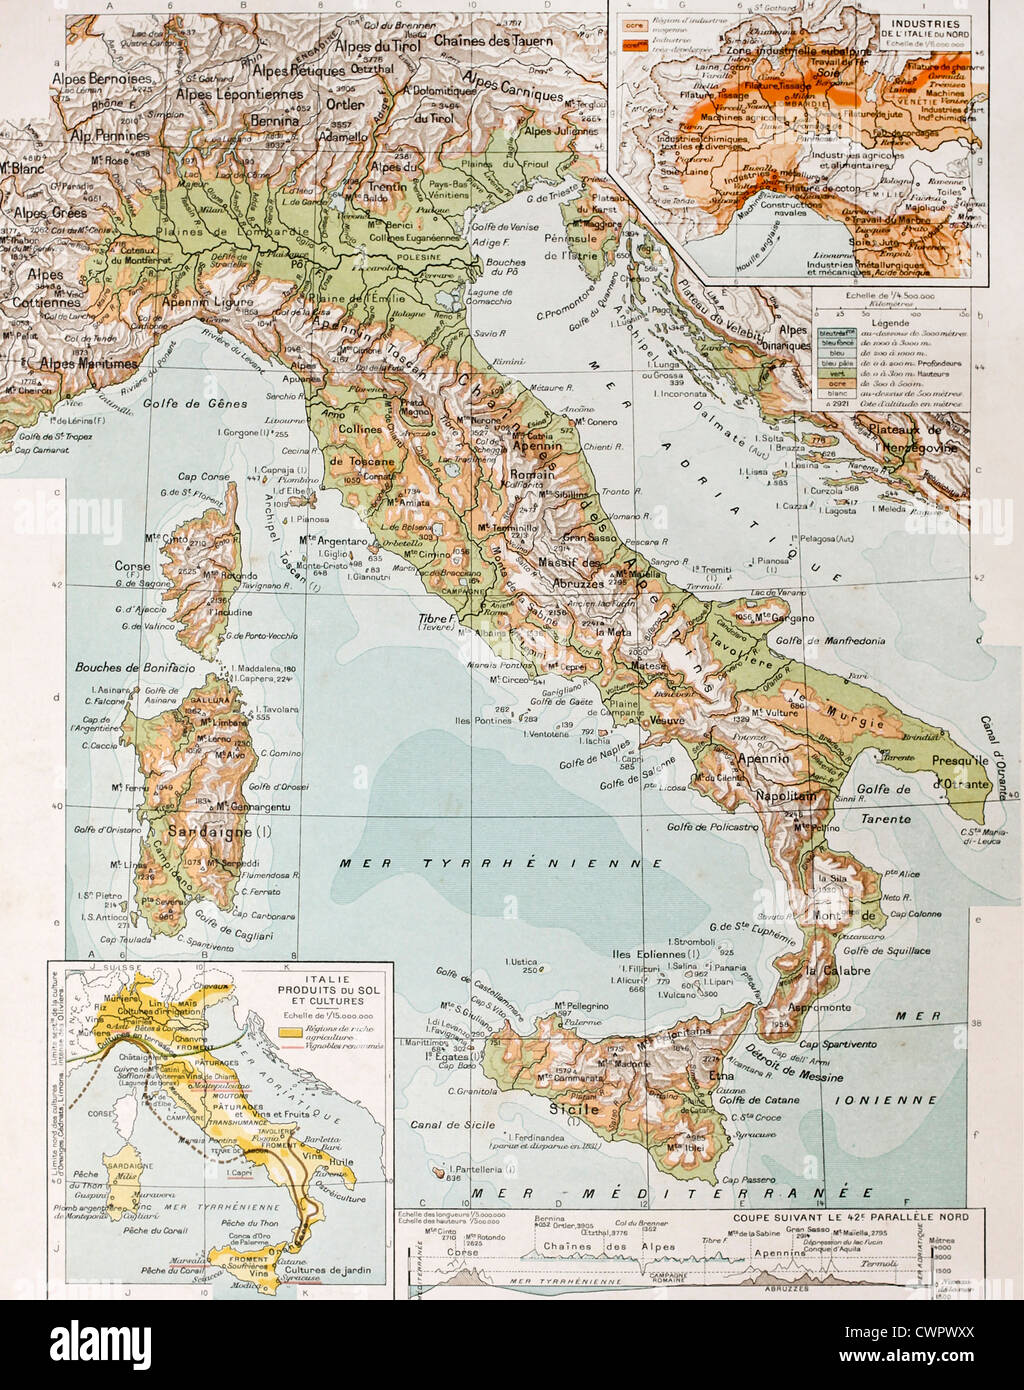 Old physical map of Italy - Stock Image